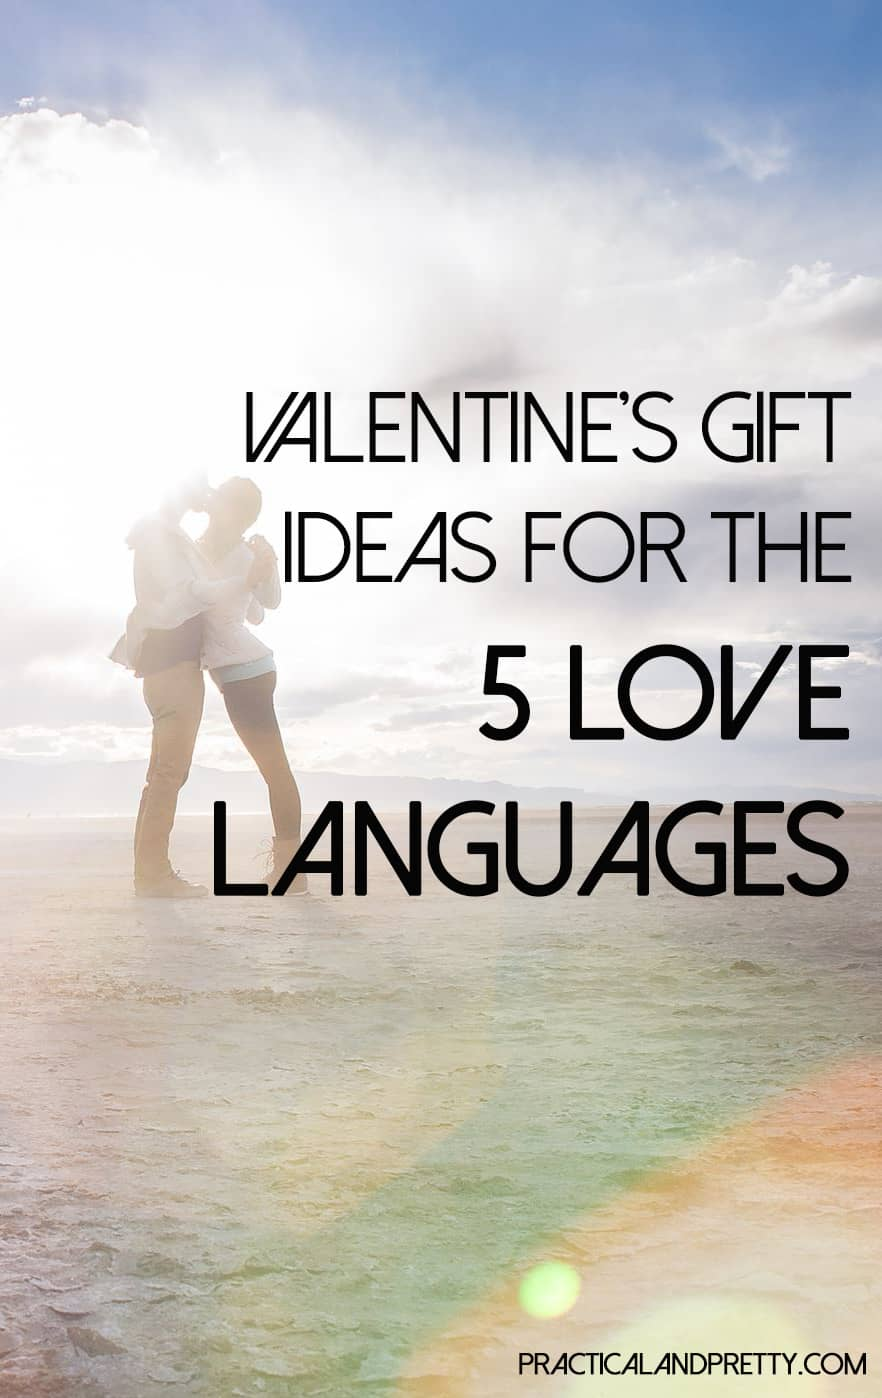 Your significant other speaks one of these five love languages so give them a gift they will truly love with one of these ideas.